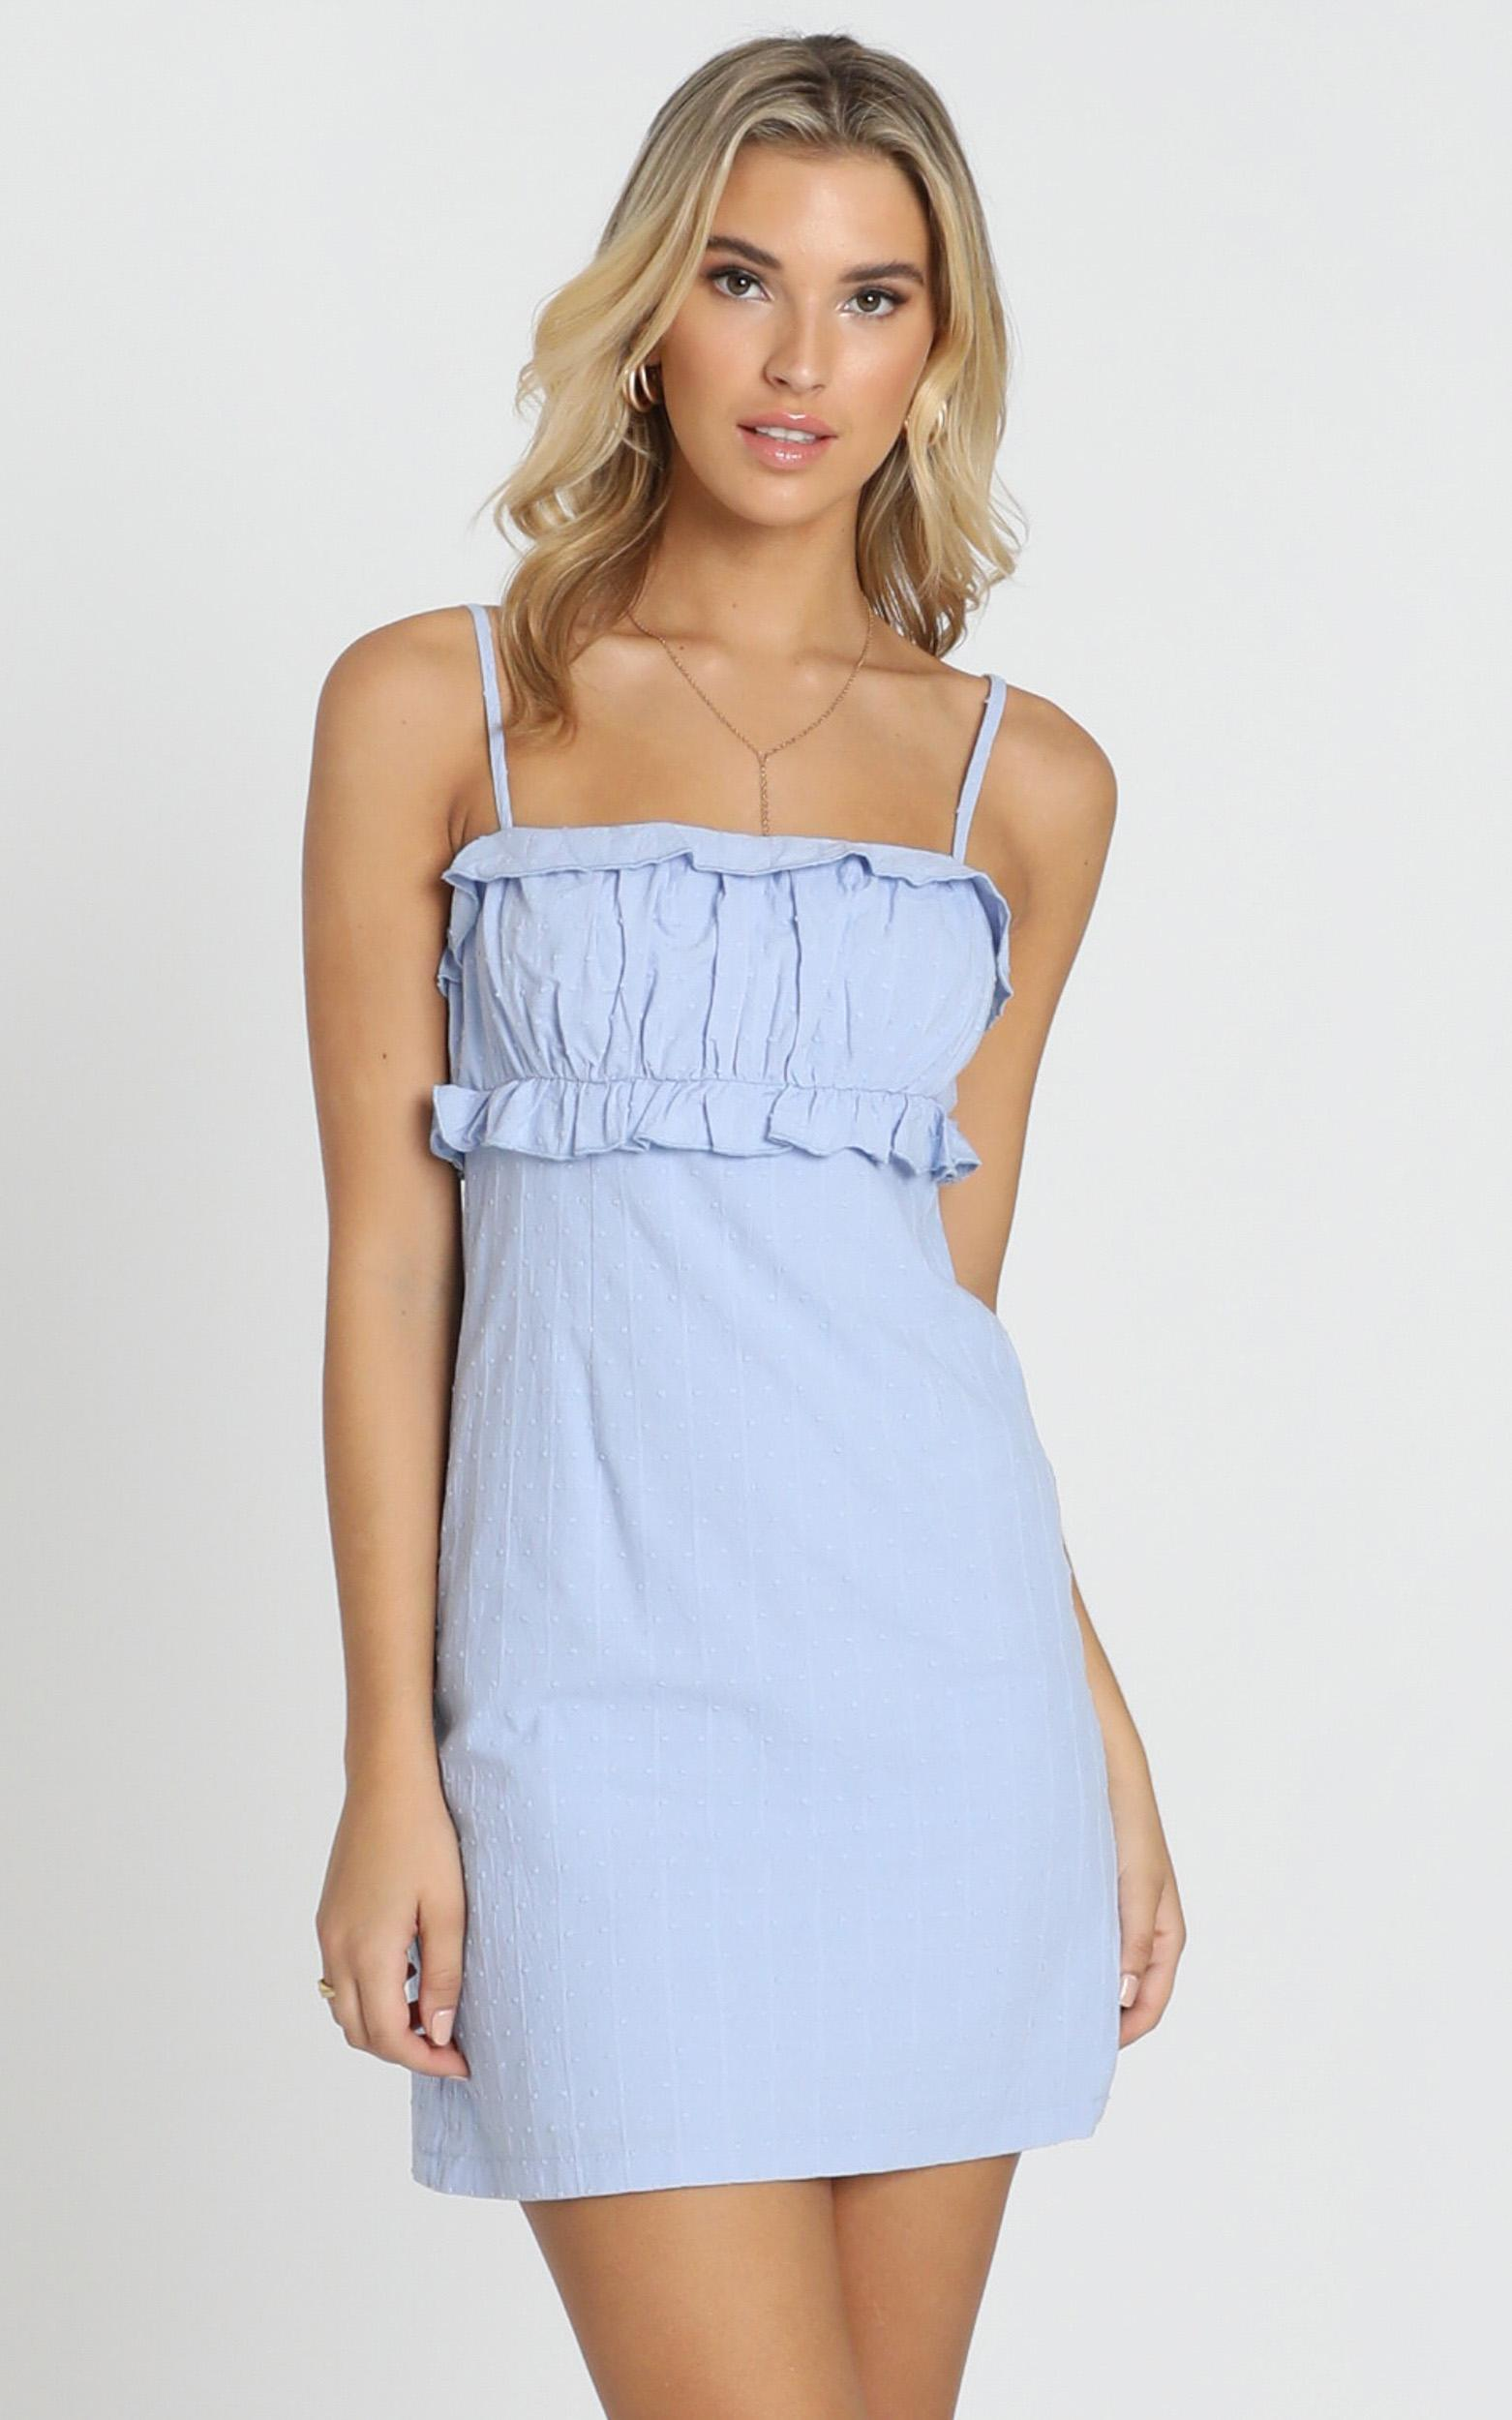 Lifes not simple Dress in blue linen look - 20 (XXXXL), Blue, hi-res image number null